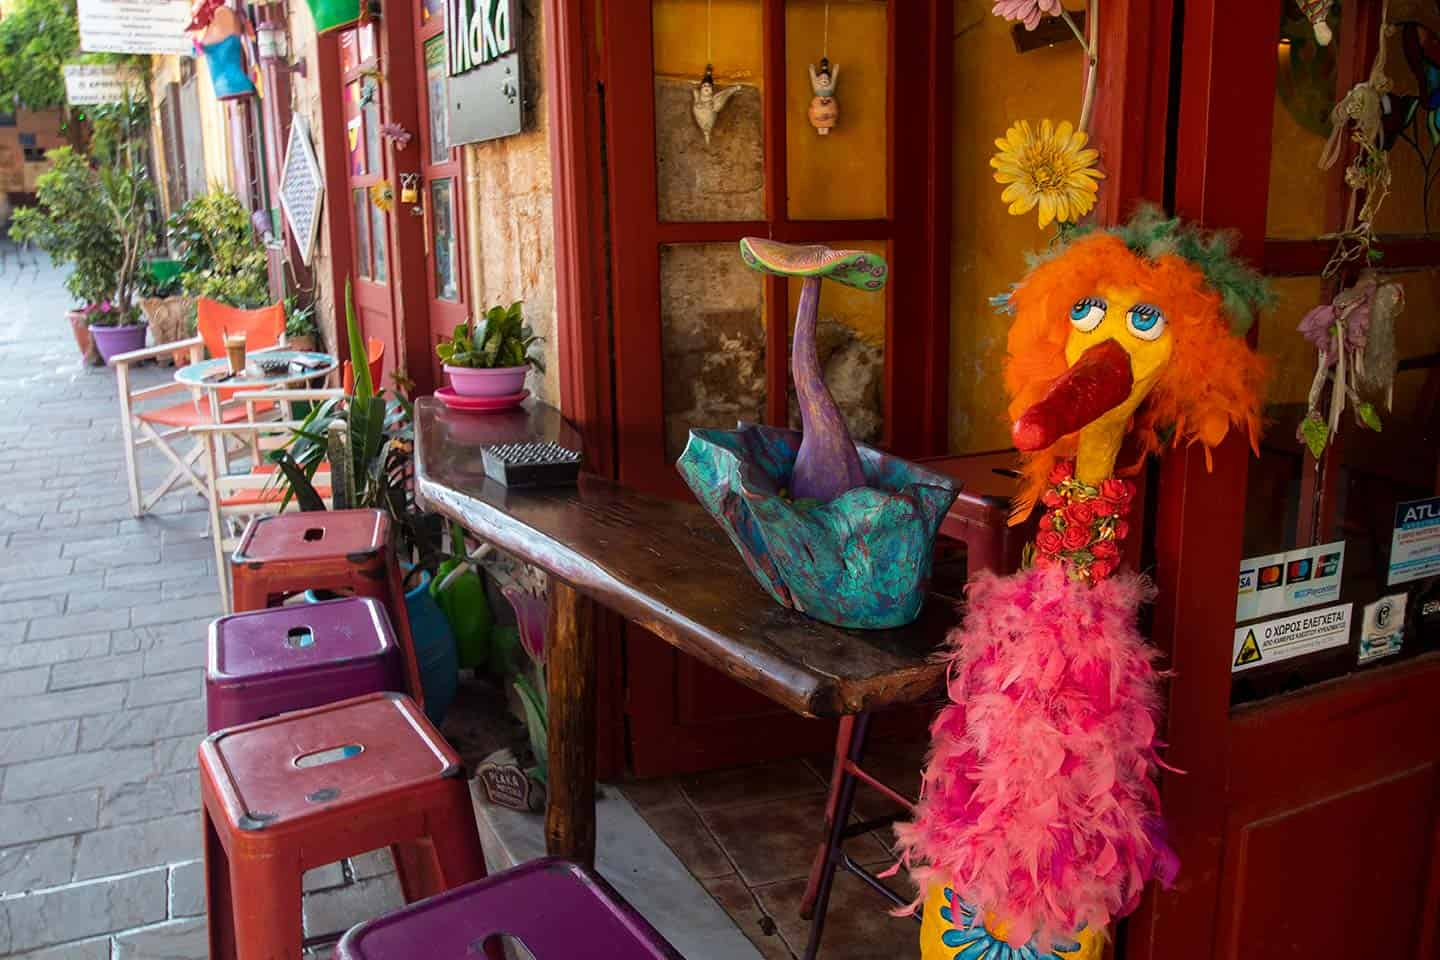 Image of Plaka cafe in Chania with a colourful doll at the entrance